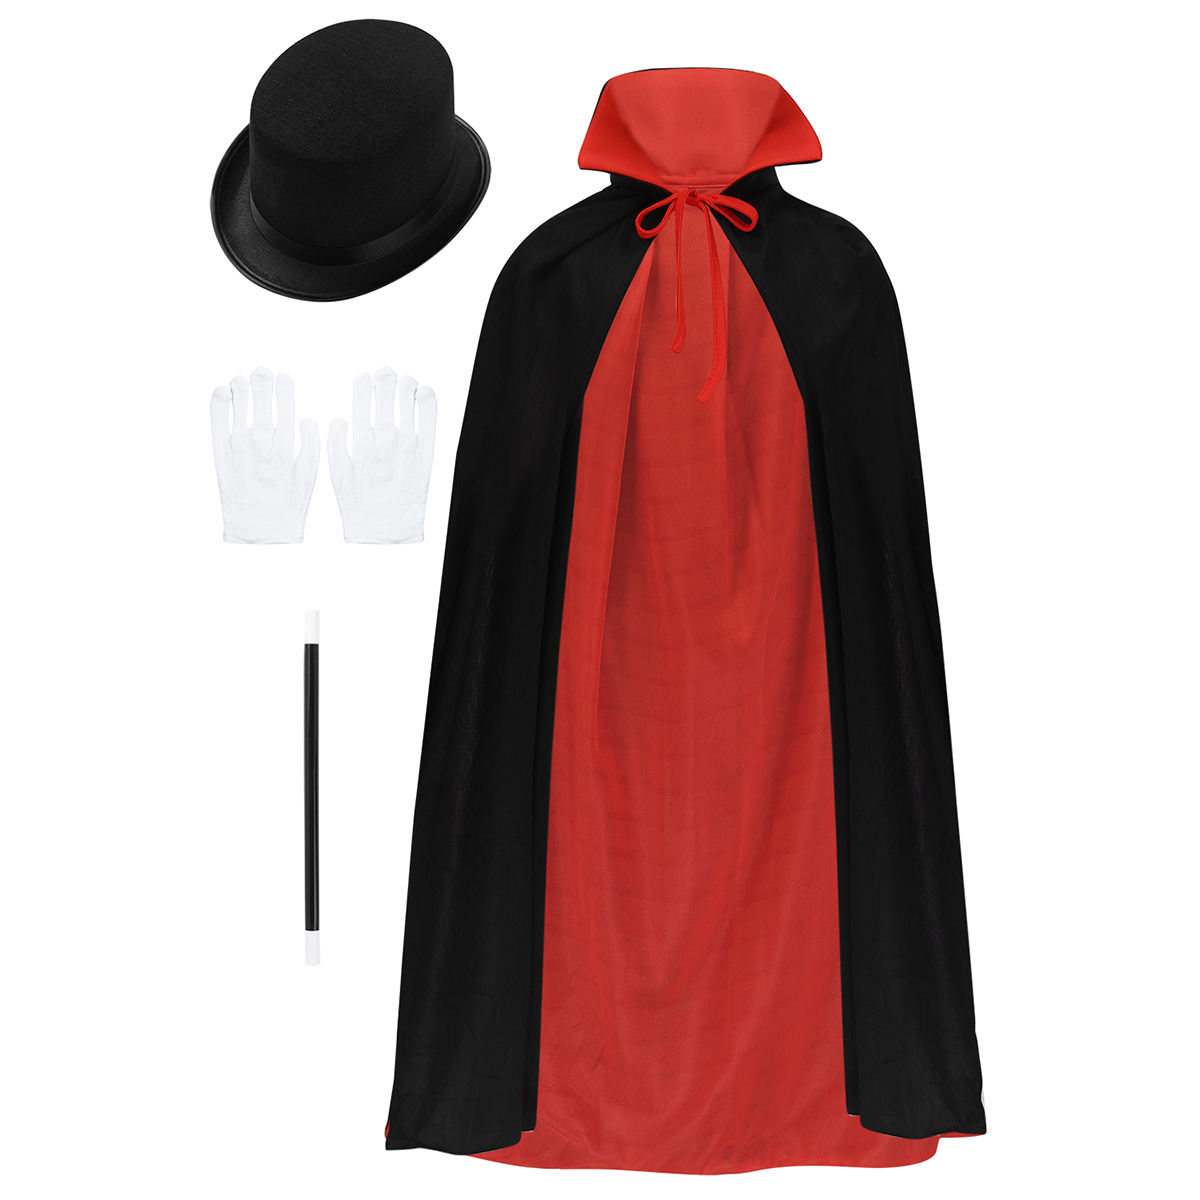 Kids Magician Role Play Costume Outfit Cape Hat Magic Wand Set for Halloween Cosplay Party Dress Up party costume